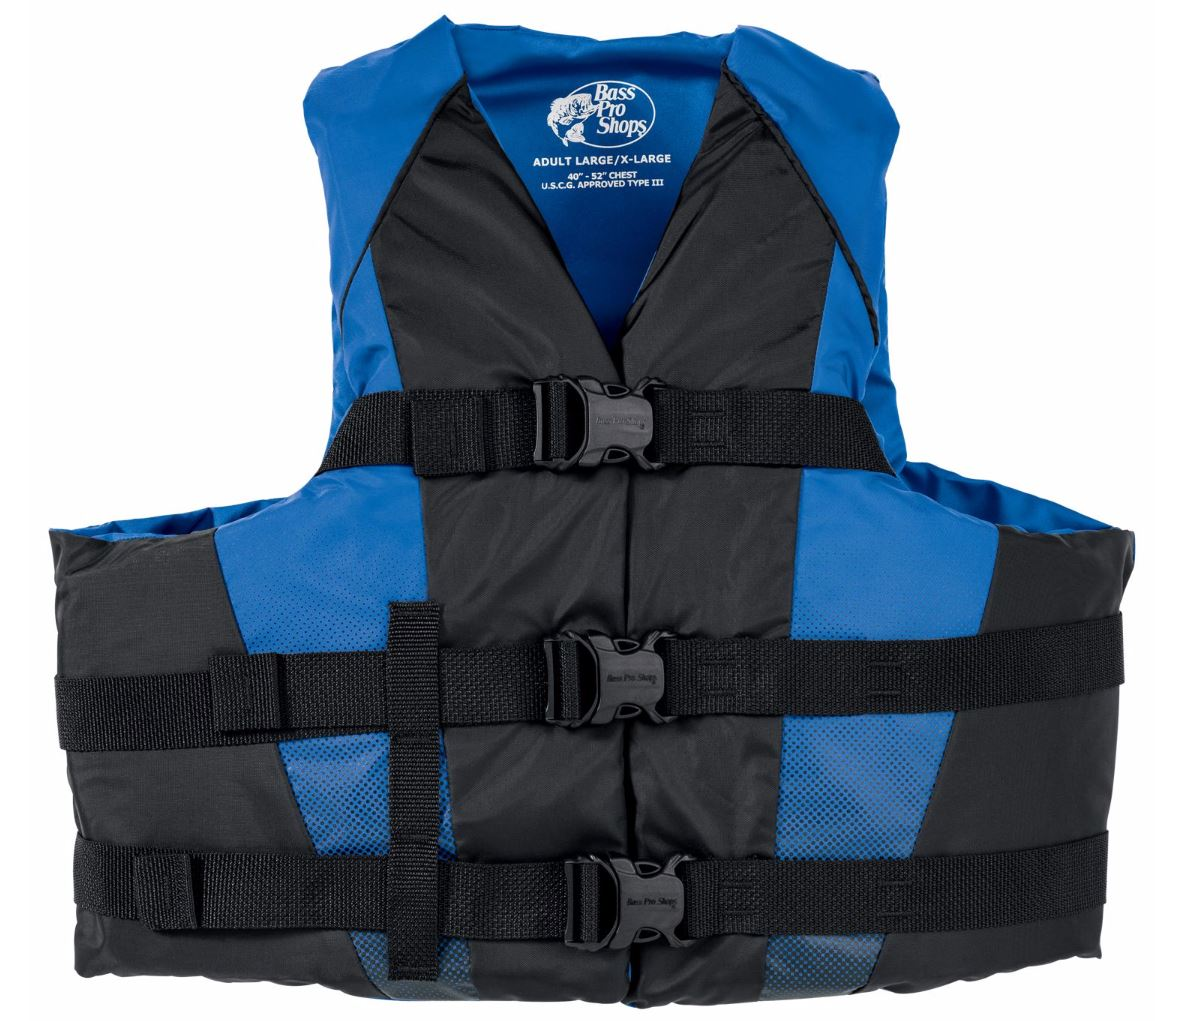 Bass pro shops nylon dual sized recreational life jacket for Bass fishing life jacket